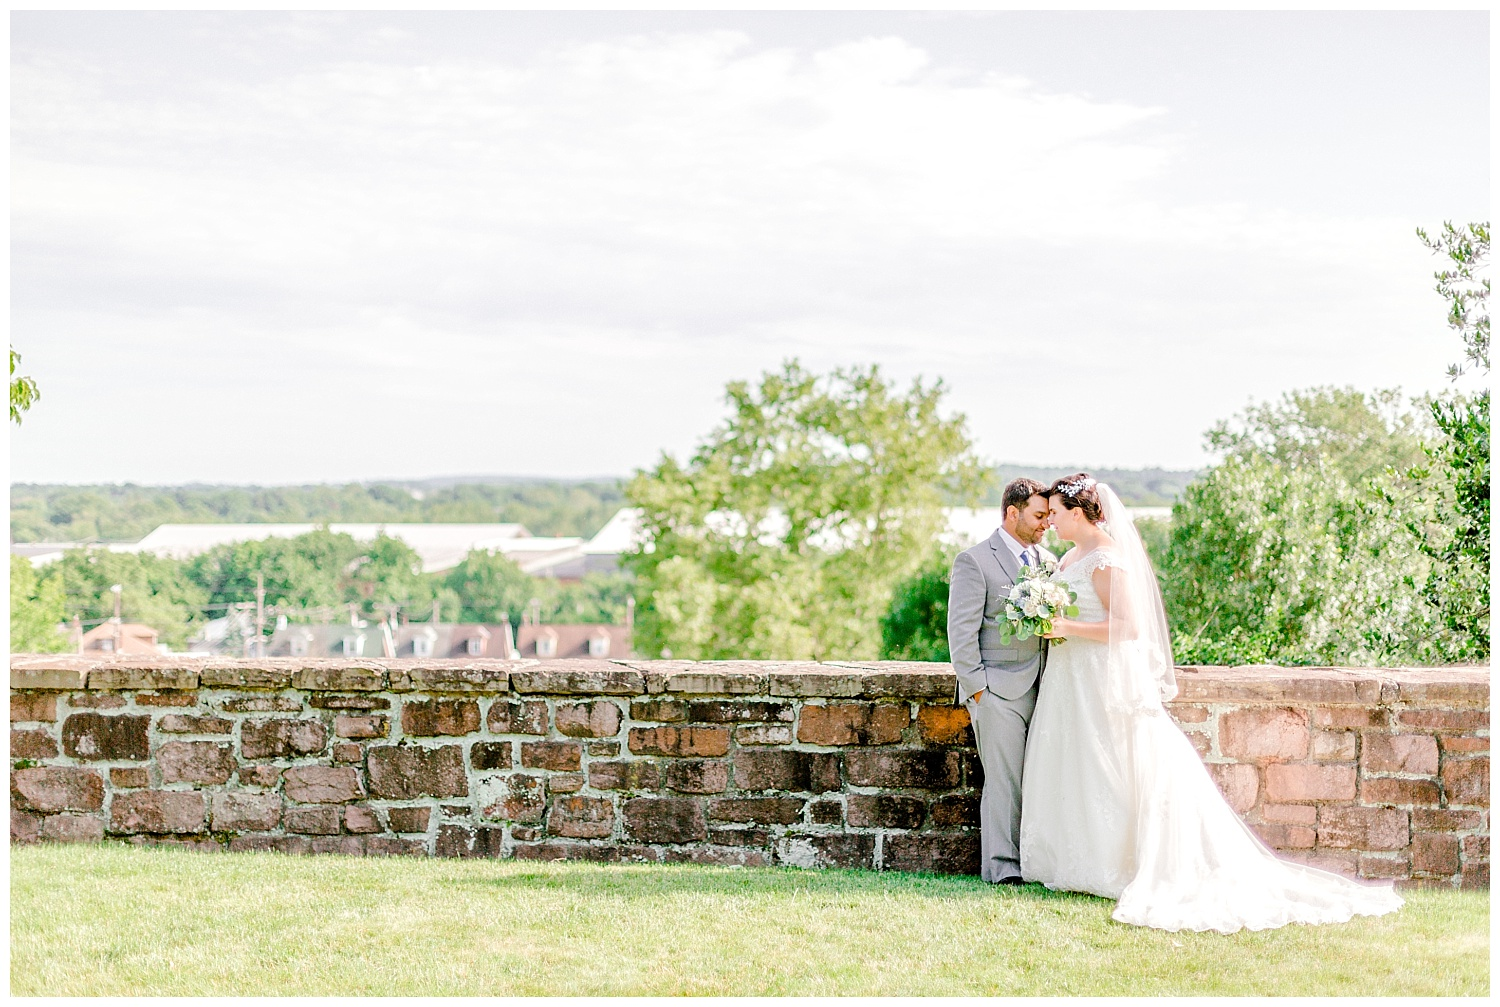 Navy and gold inspired june summer lehigh valley wedding by Pennsylvania based wedding and lifestyle photographer lytle photographer_0048.jpg